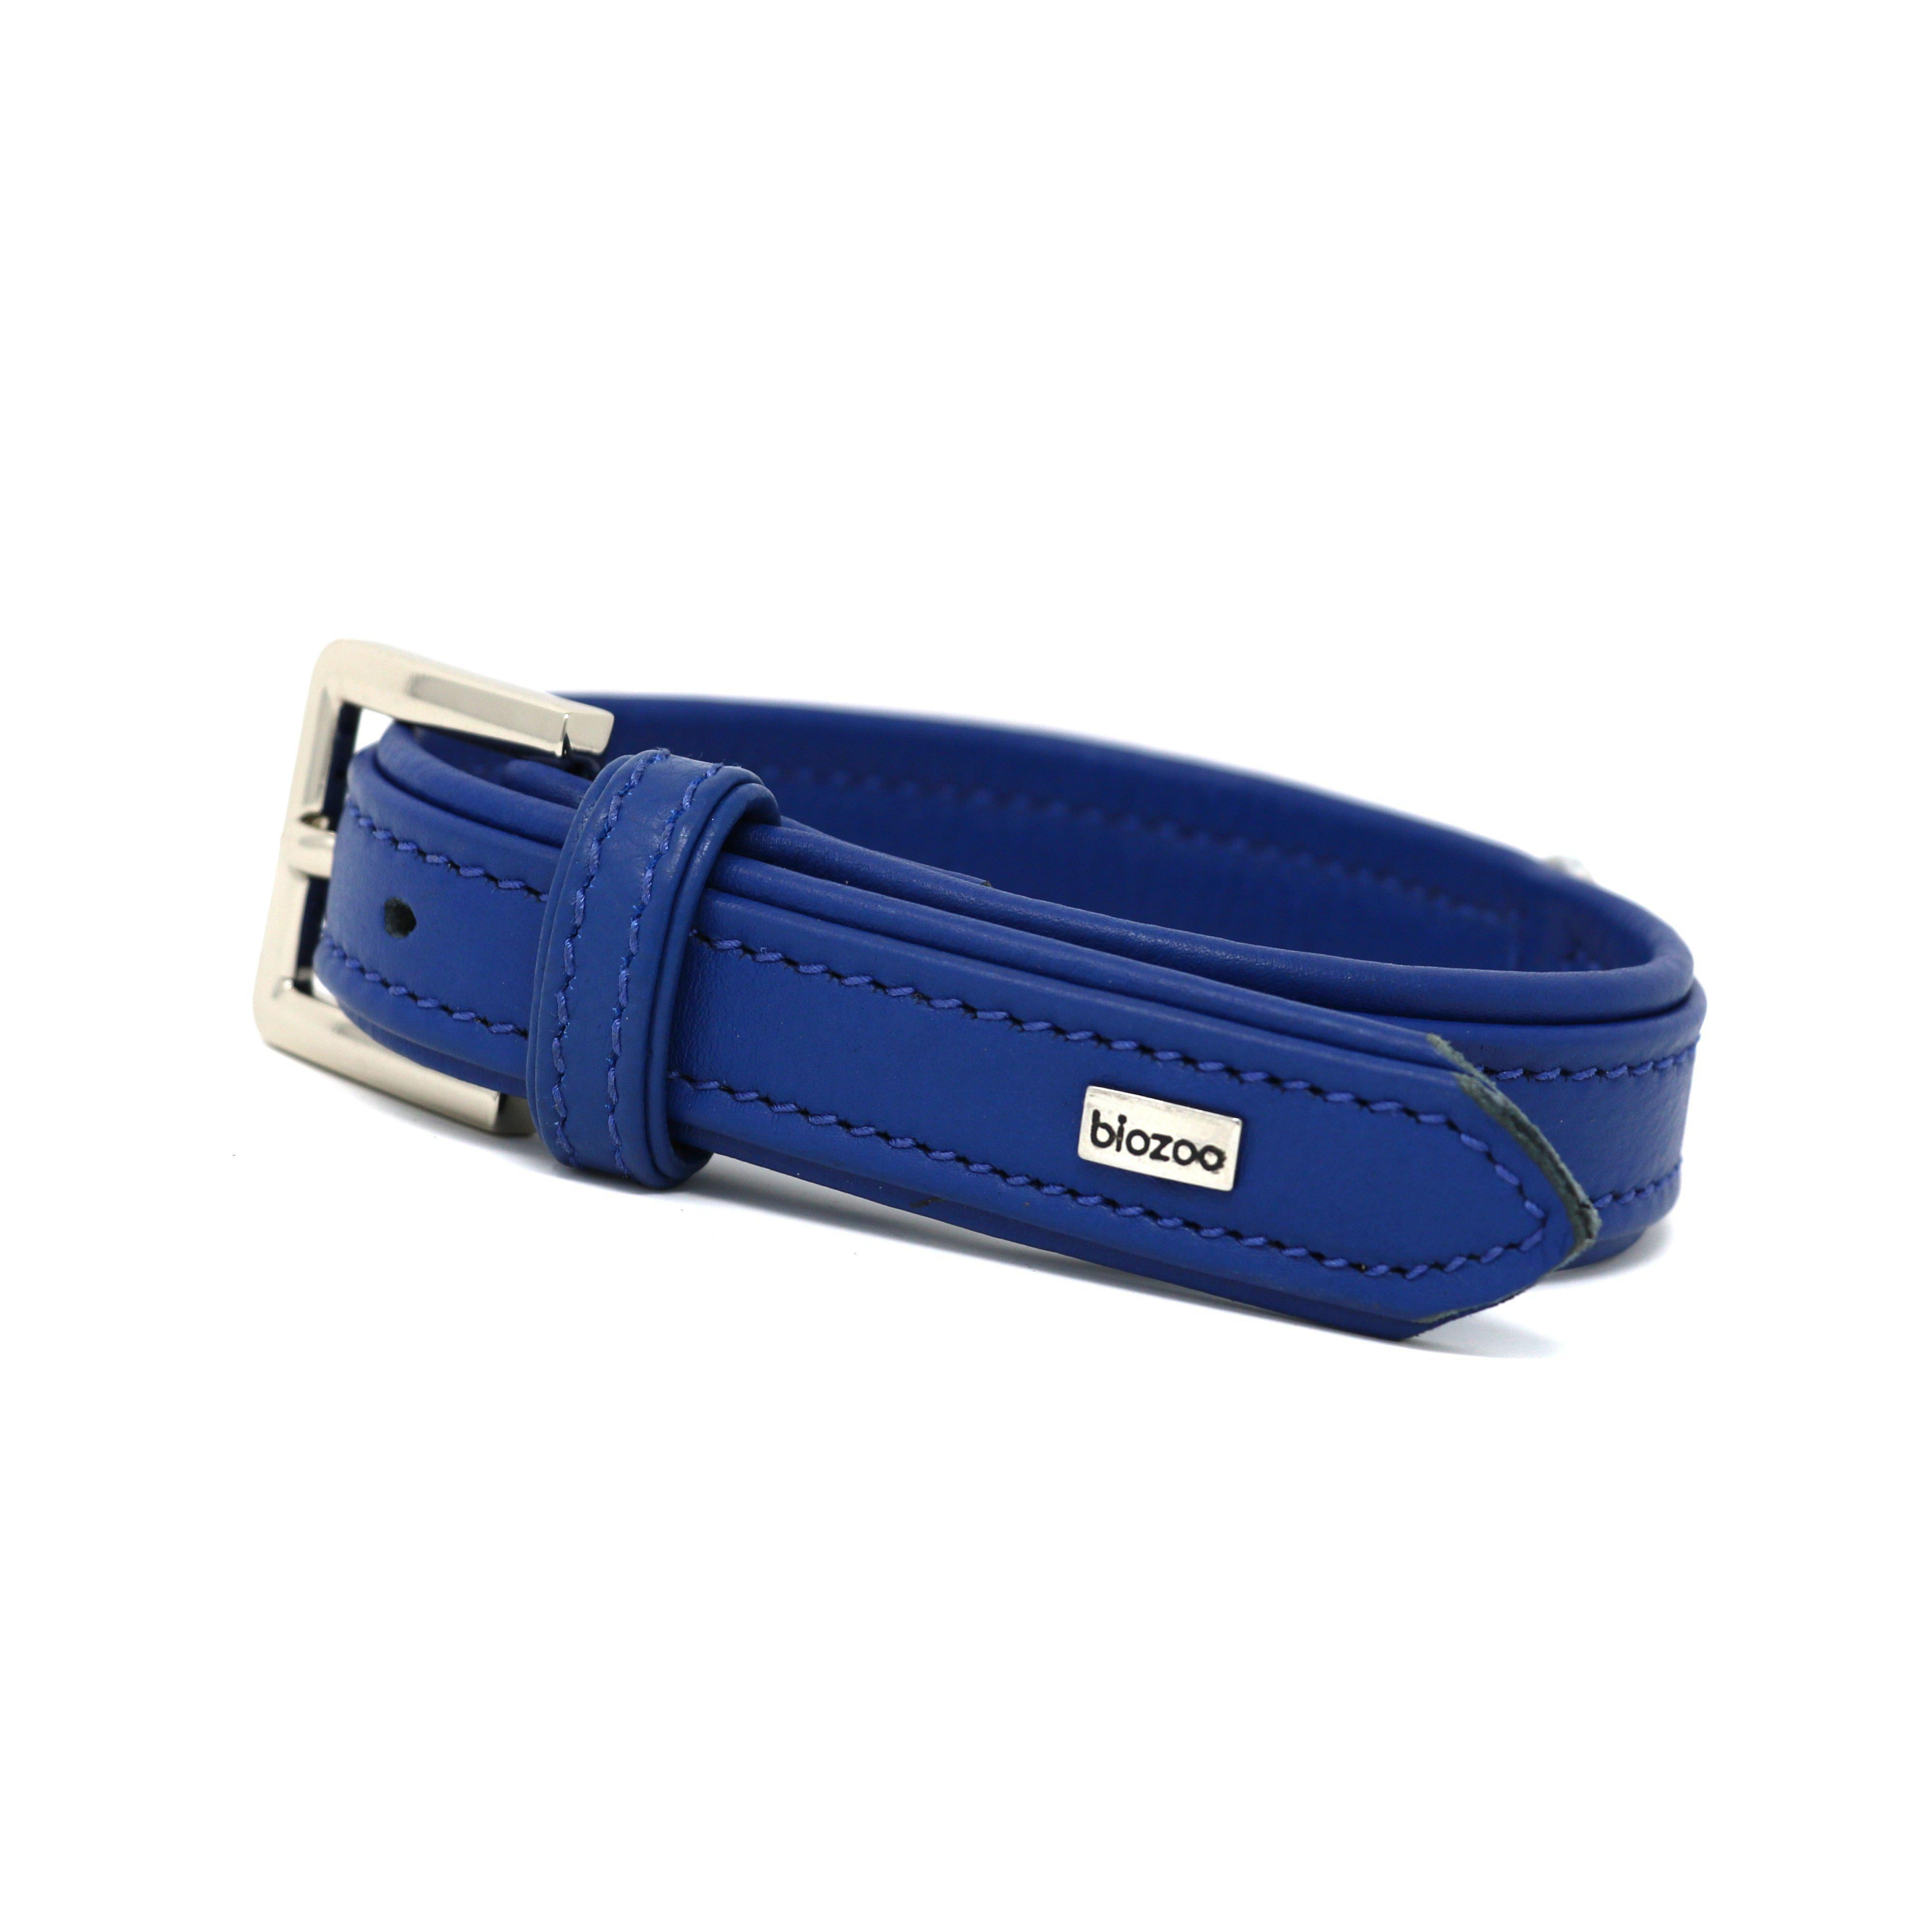 Provence Leather Collar-Collar-Biozoo-Blue-35 x 1,5 cm-Biozoopets